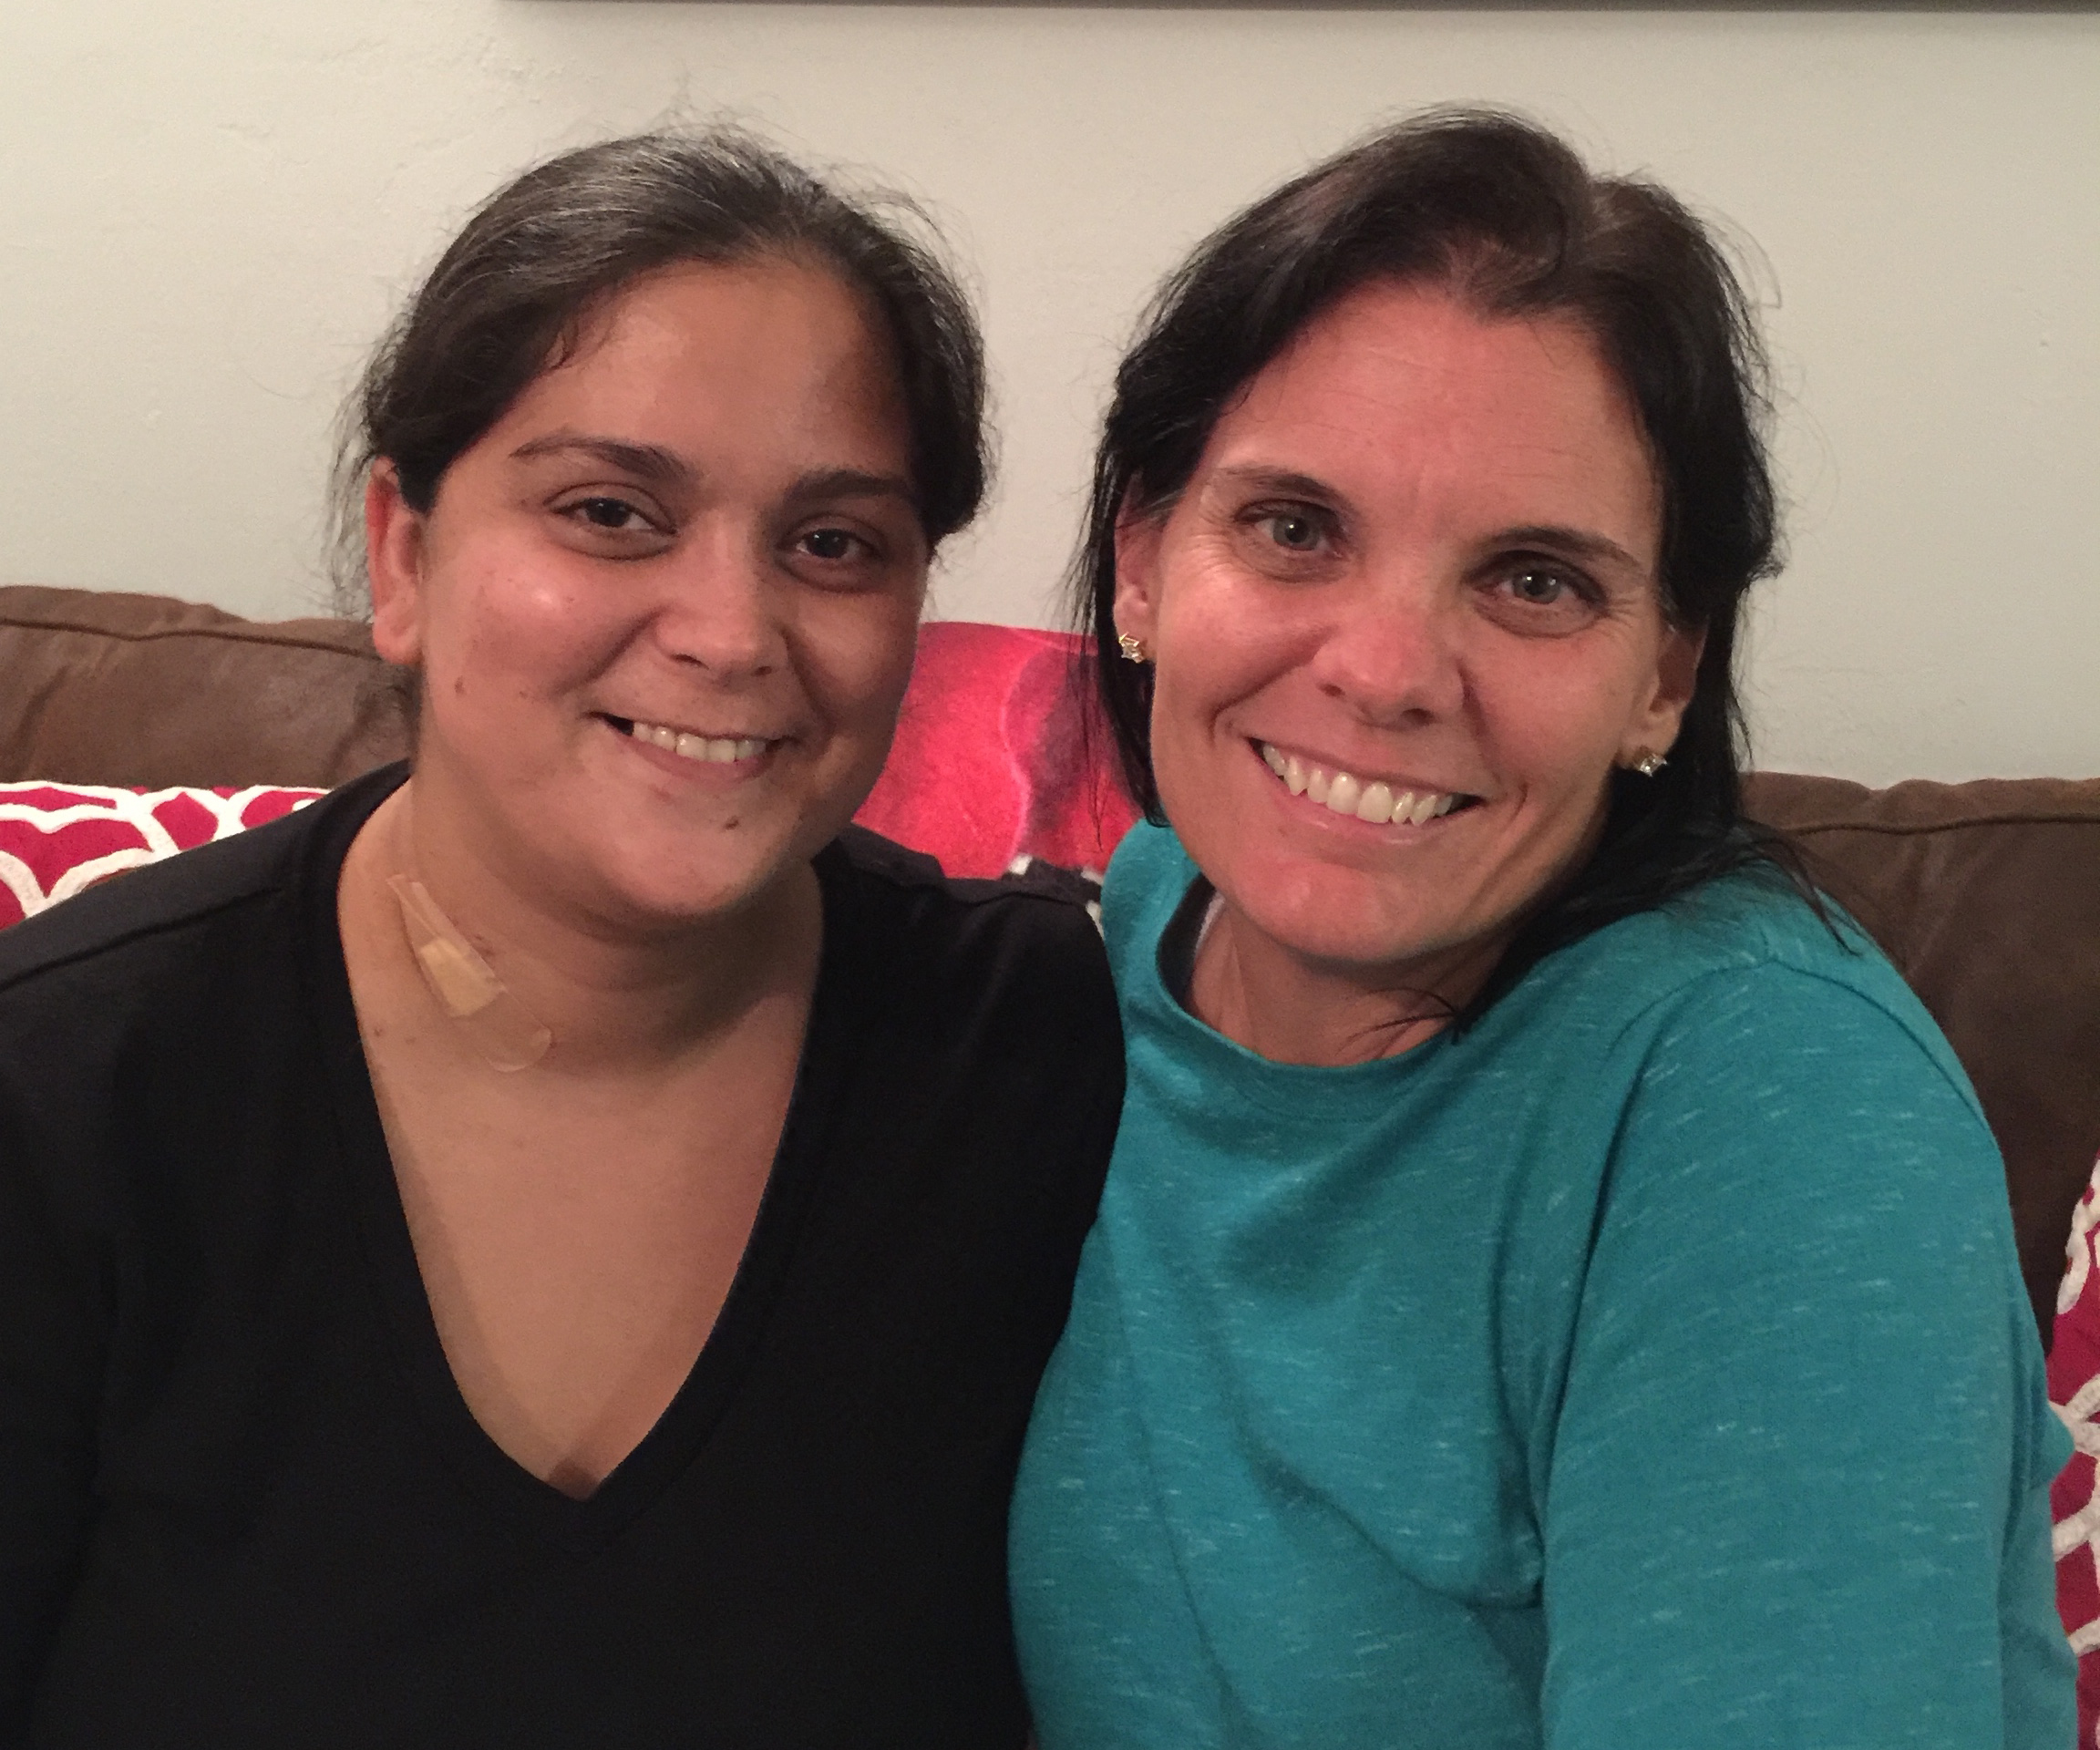 Donna Hoagland, right, and recipient, Anahita